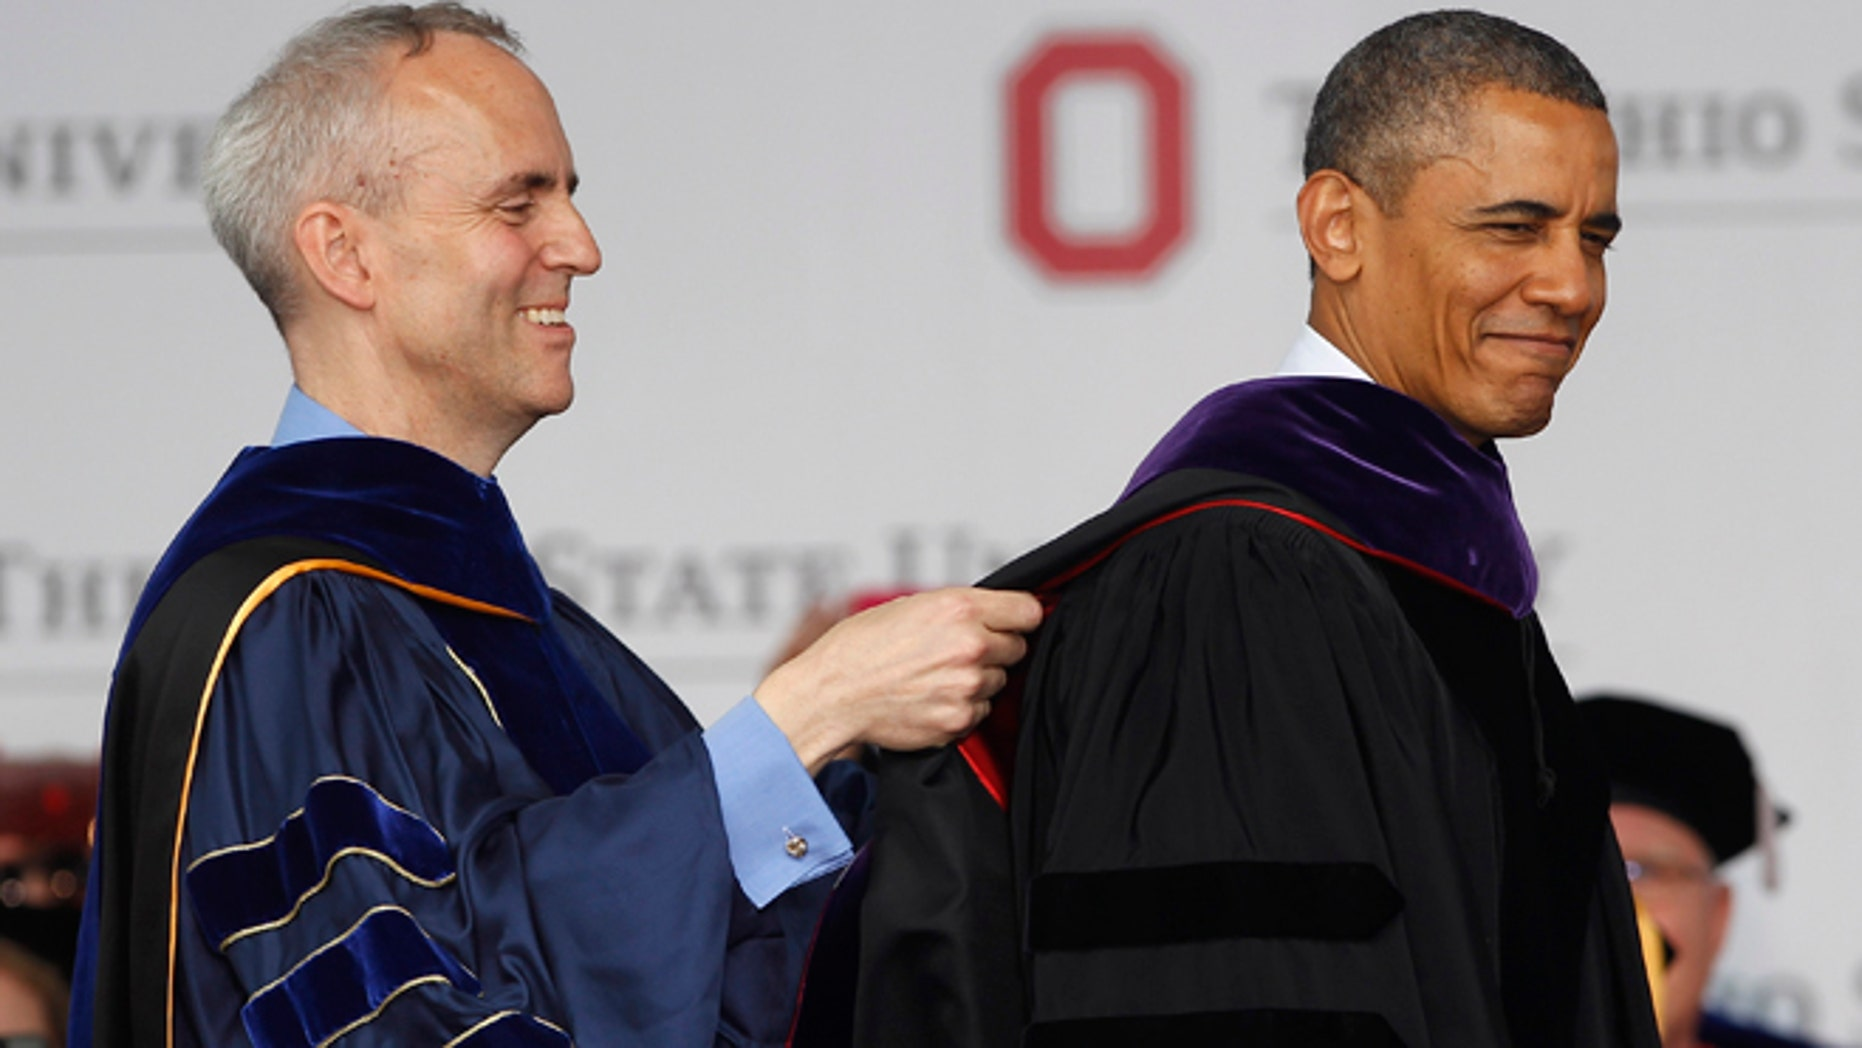 COLUMBUS, OH - MAY 05:  Ohio State Trustee David Horn (L) puts a sash on U.S. President Barack Obama during commencement ceremonies at The Ohio State University at Ohio Stadium on May 5, 2013 in Columbus, Ohio. Obama addressed the graduates a year from the day he kicked off his re-election campaign at the campus.The president was also given an honorary degree Doctor of Laws. (Photo by Matt Sullivan/Getty Images)